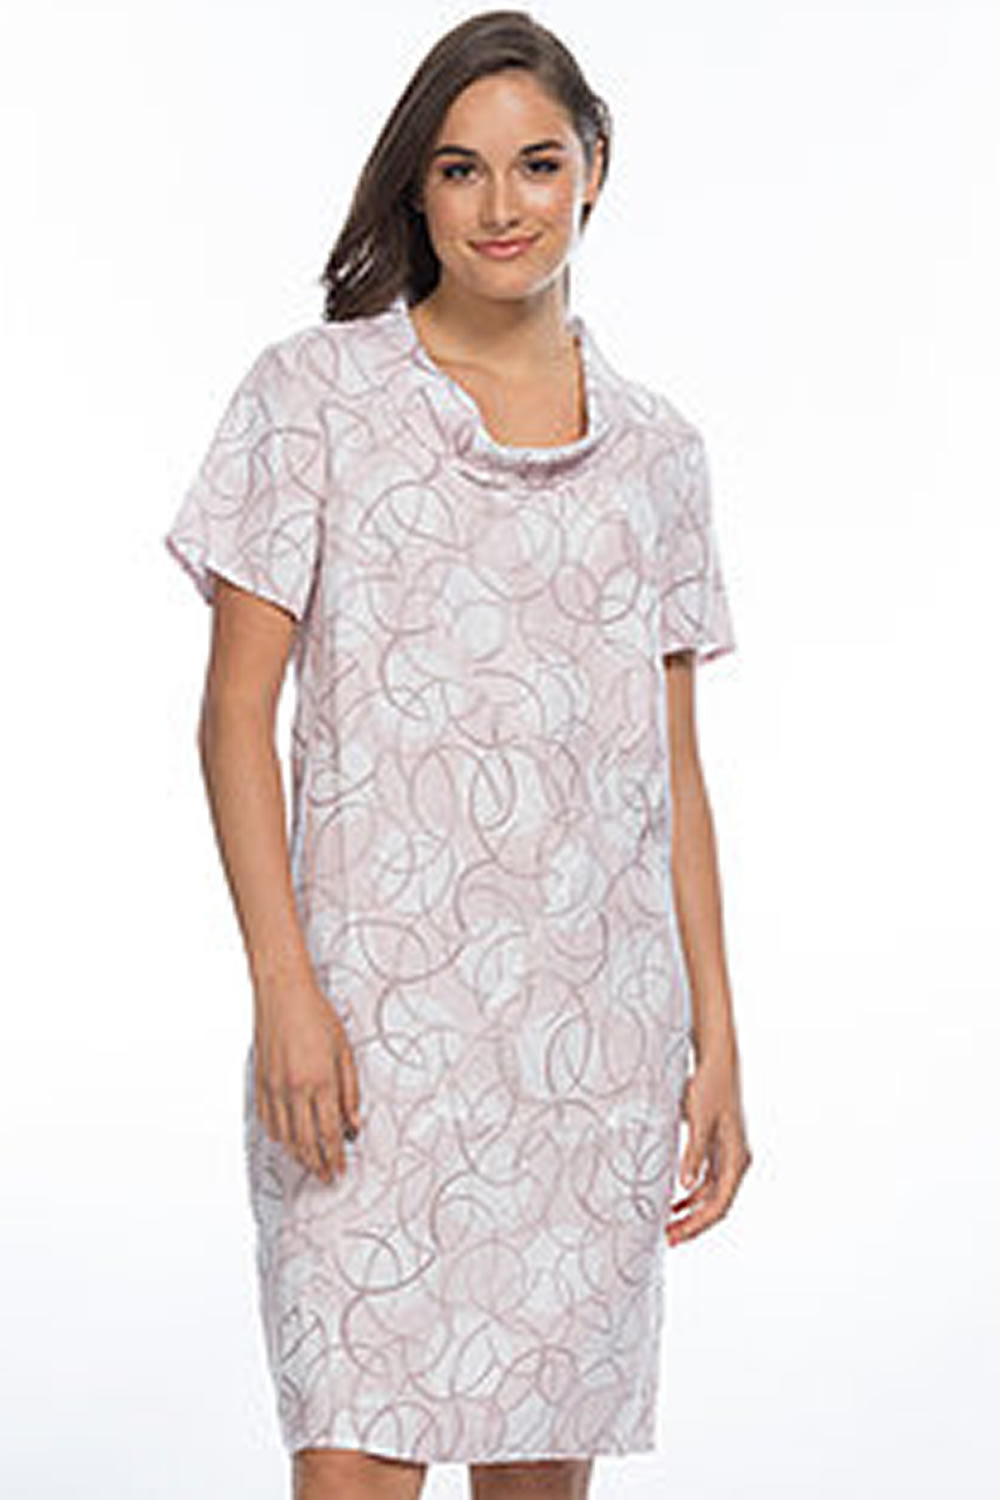 Gordon Smith Cowl Neck Circular Print Dress